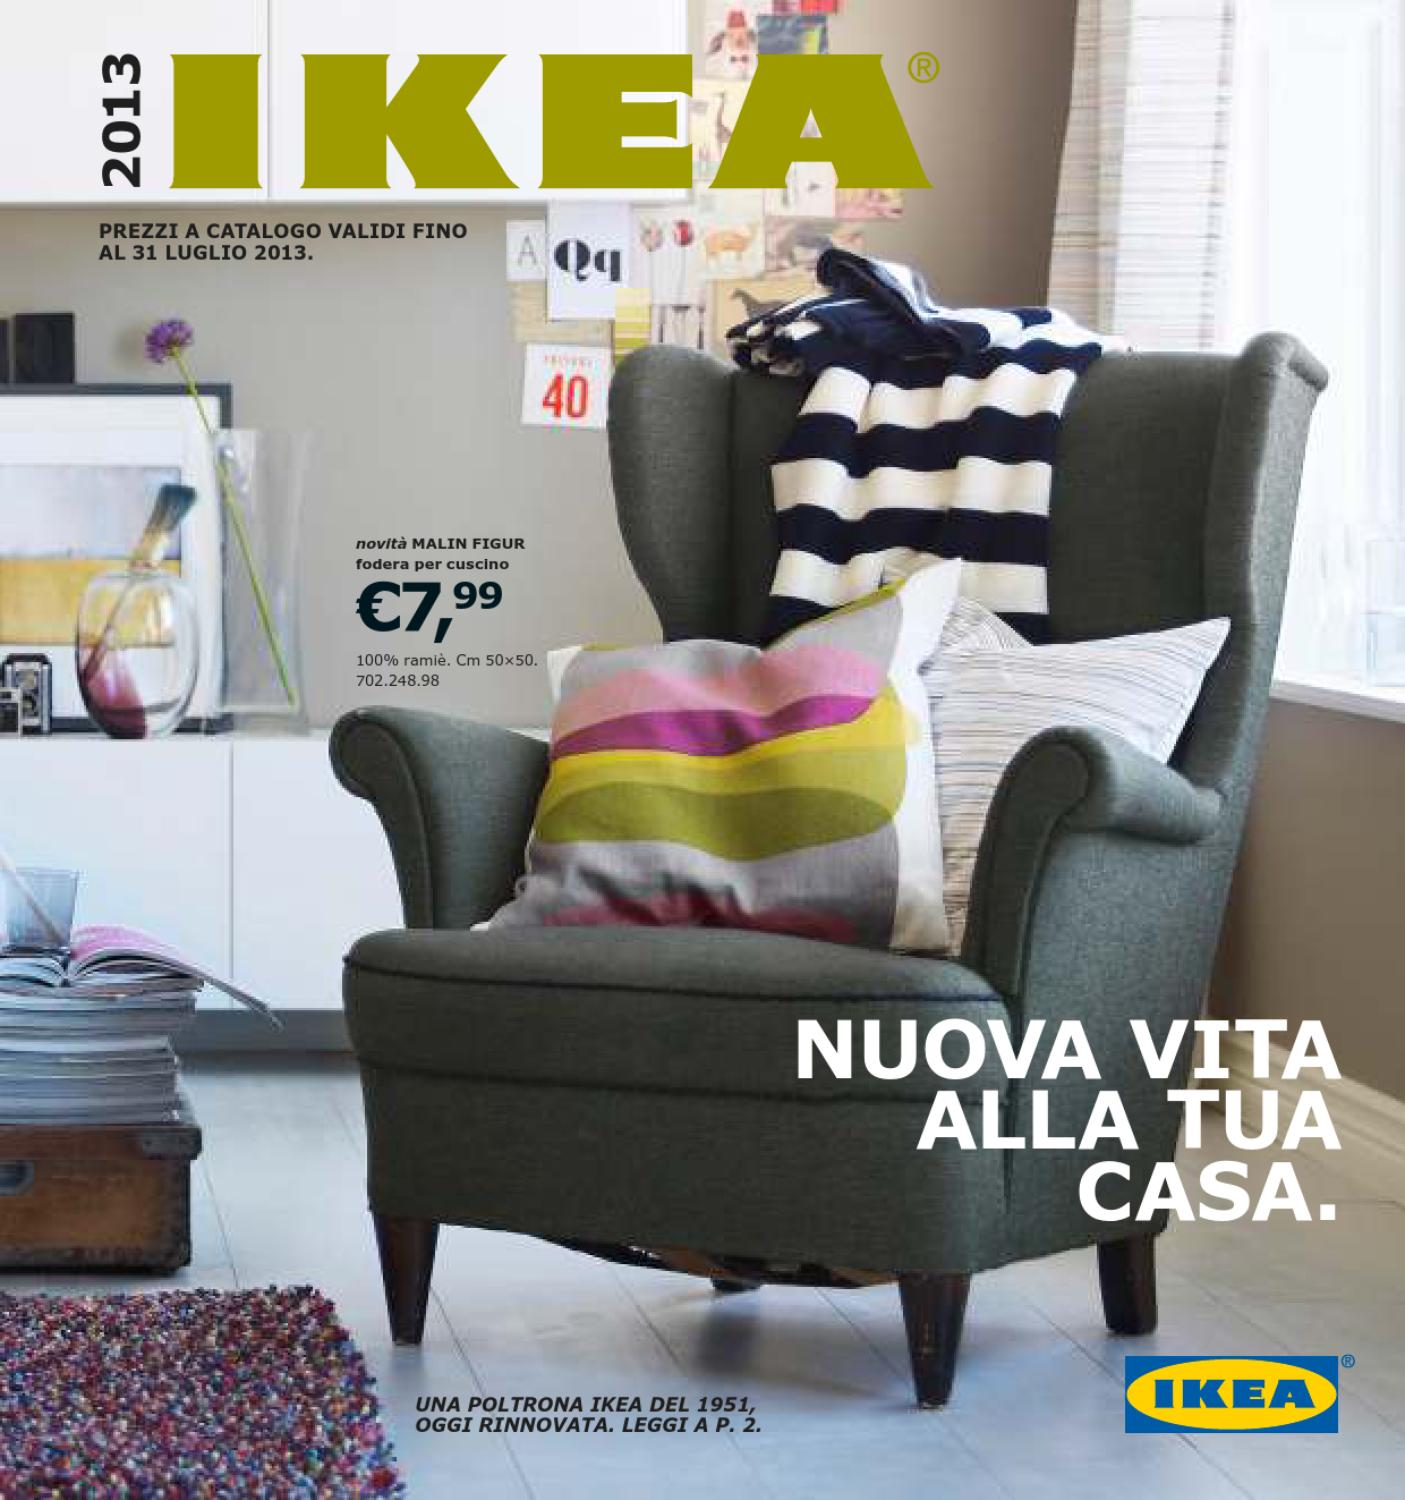 Mensole Ikea Profondità 40 Cm Ikea Catalogo By Nicola Culatello Issuu